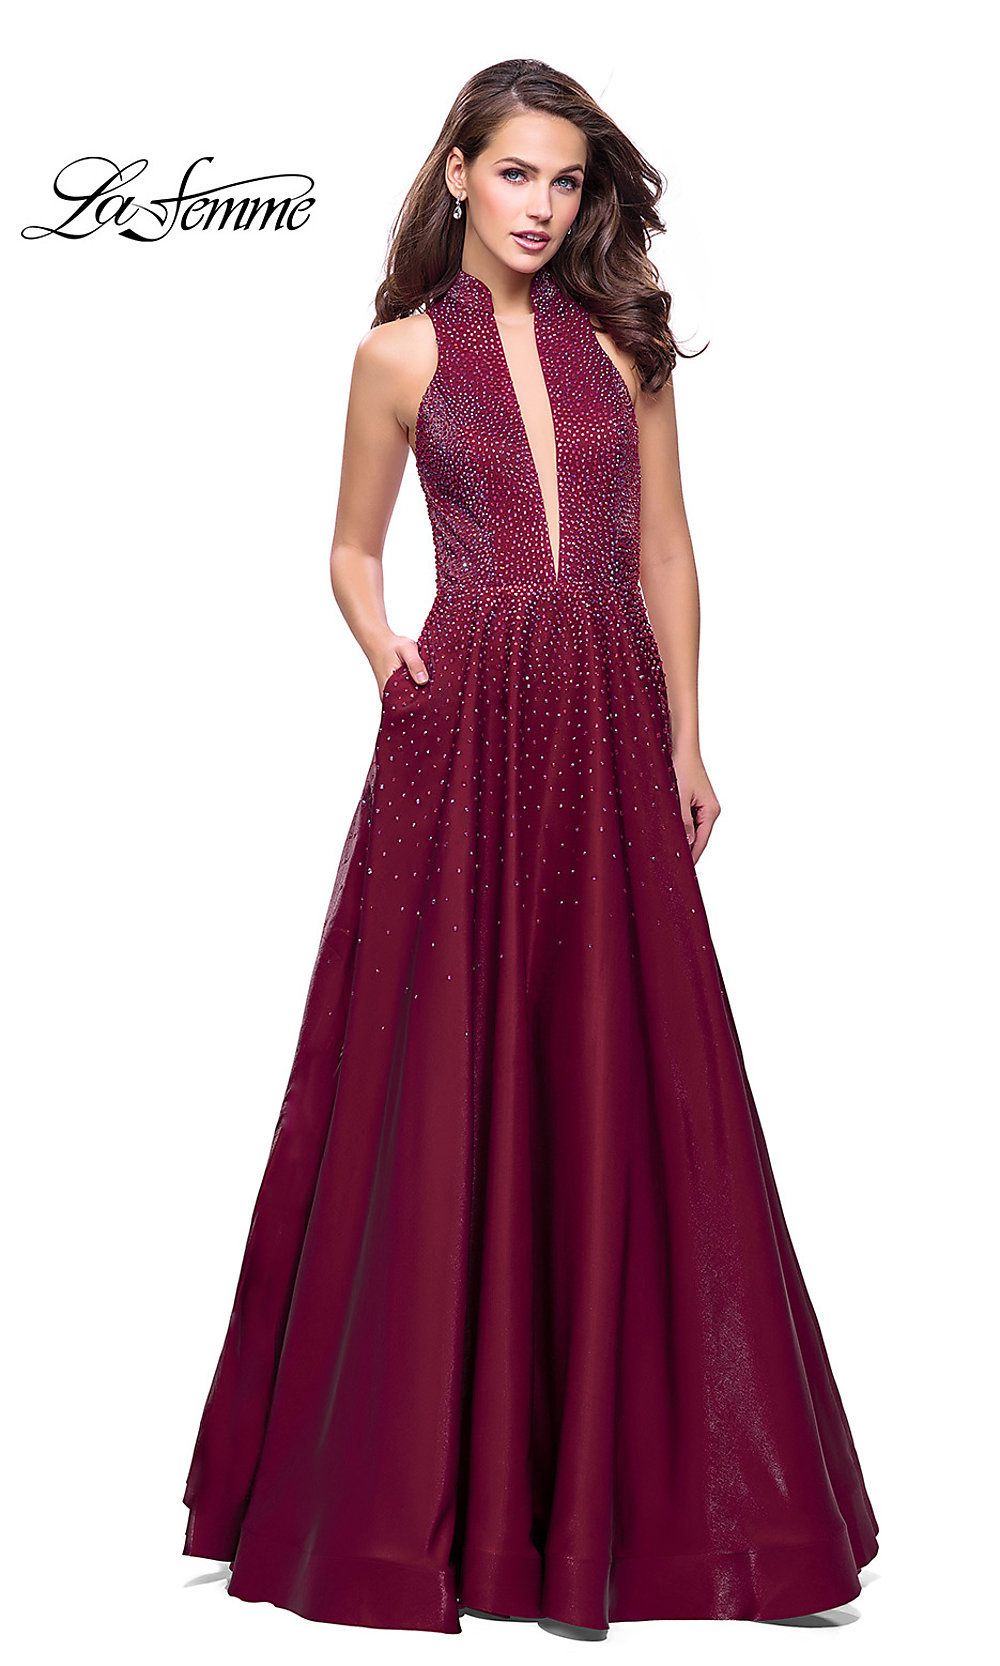 Prom Dresses, Celebrity Dresses, Sexy Evening Gowns at